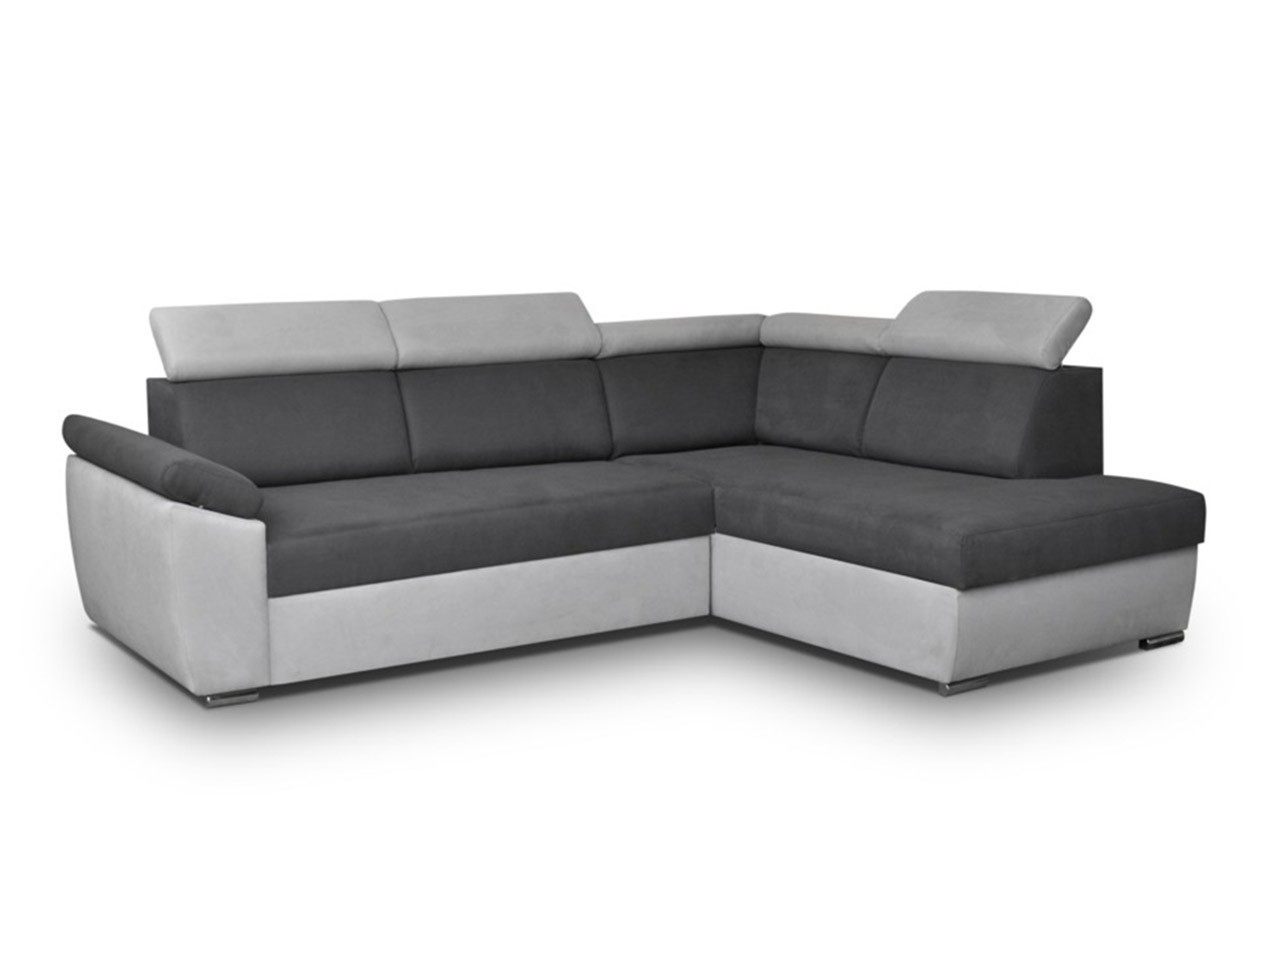 ecksofa mit bettfunktion schlafsofa sofa ecksofa mit. Black Bedroom Furniture Sets. Home Design Ideas